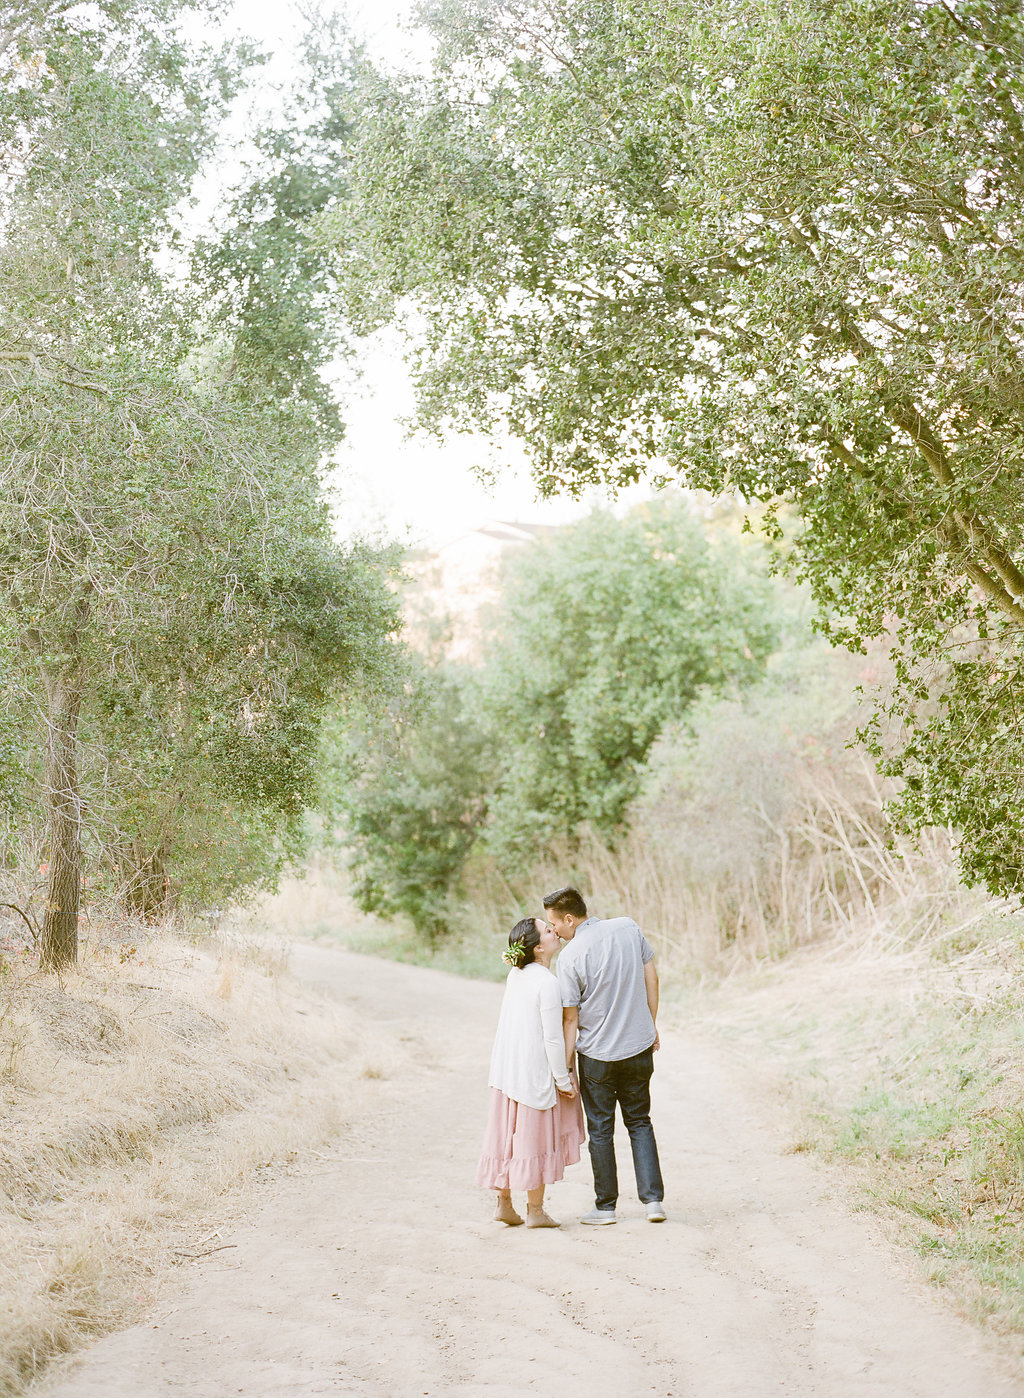 San Francisco Maternity Session Film Photographer Jenny Soi